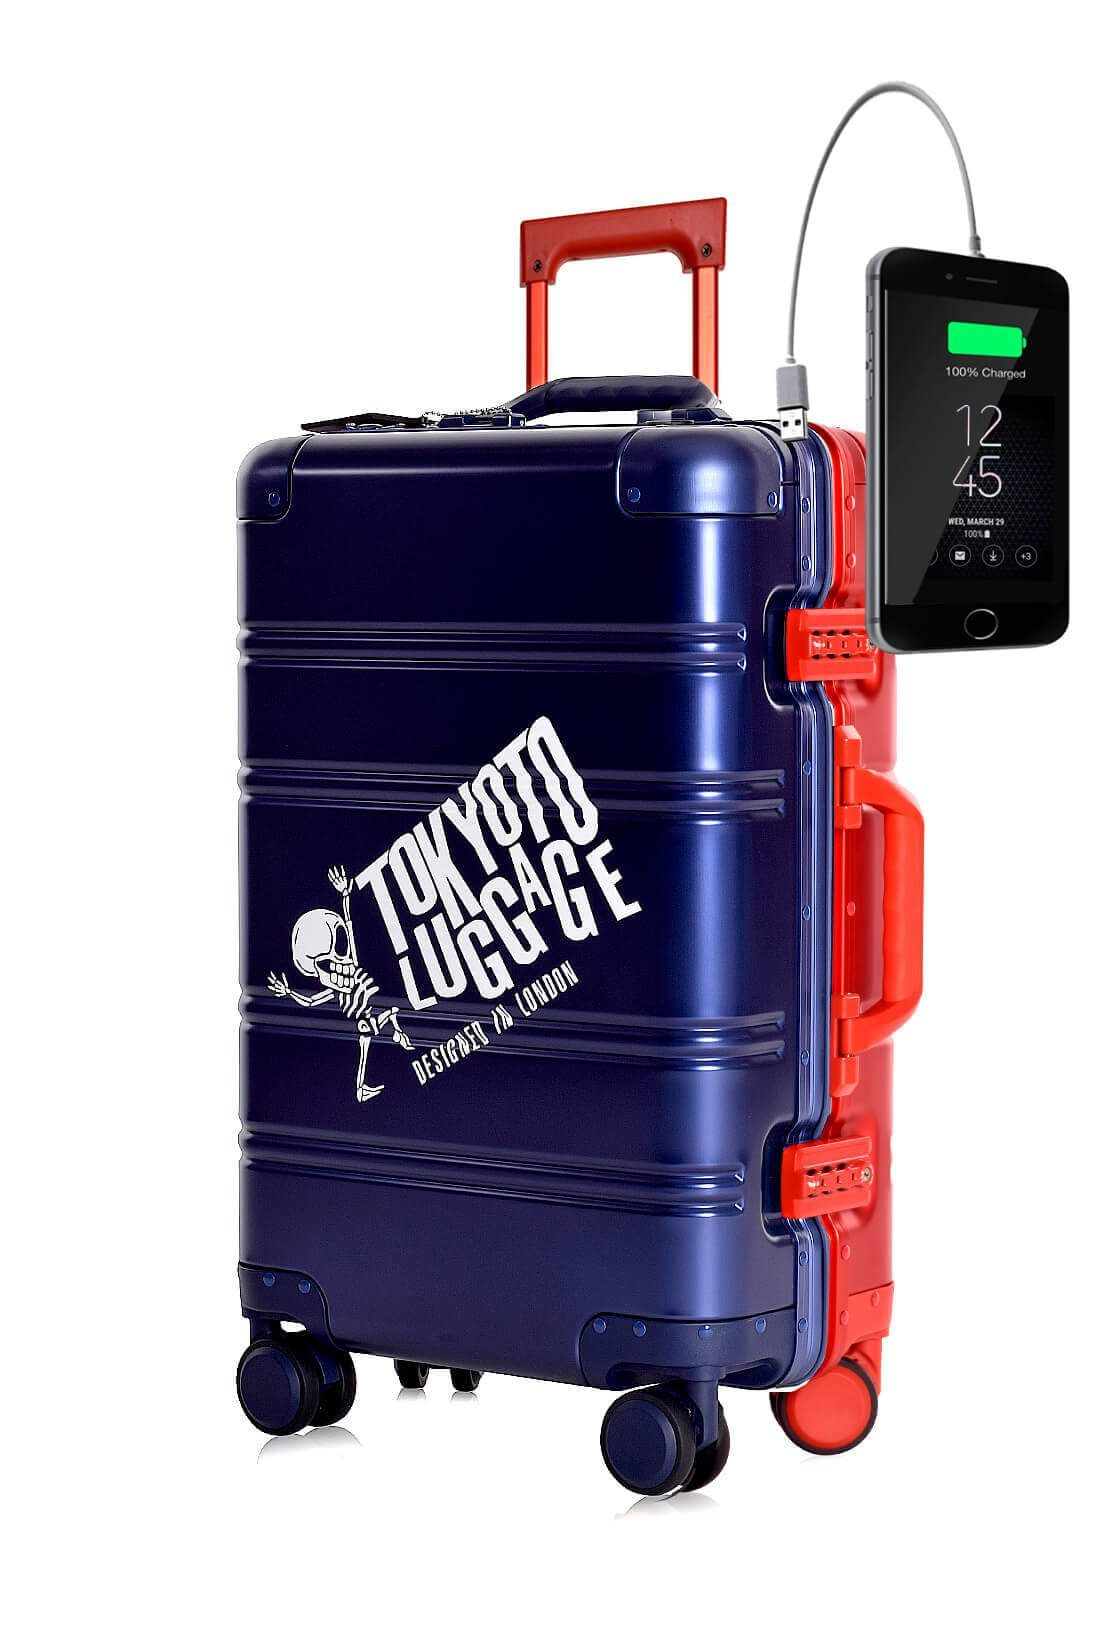 Aluminum Metal Hand Trolley Cabin Luggage Suitcase Online Powerbank USB Charger TOKYOTO BLUE RED LOGO